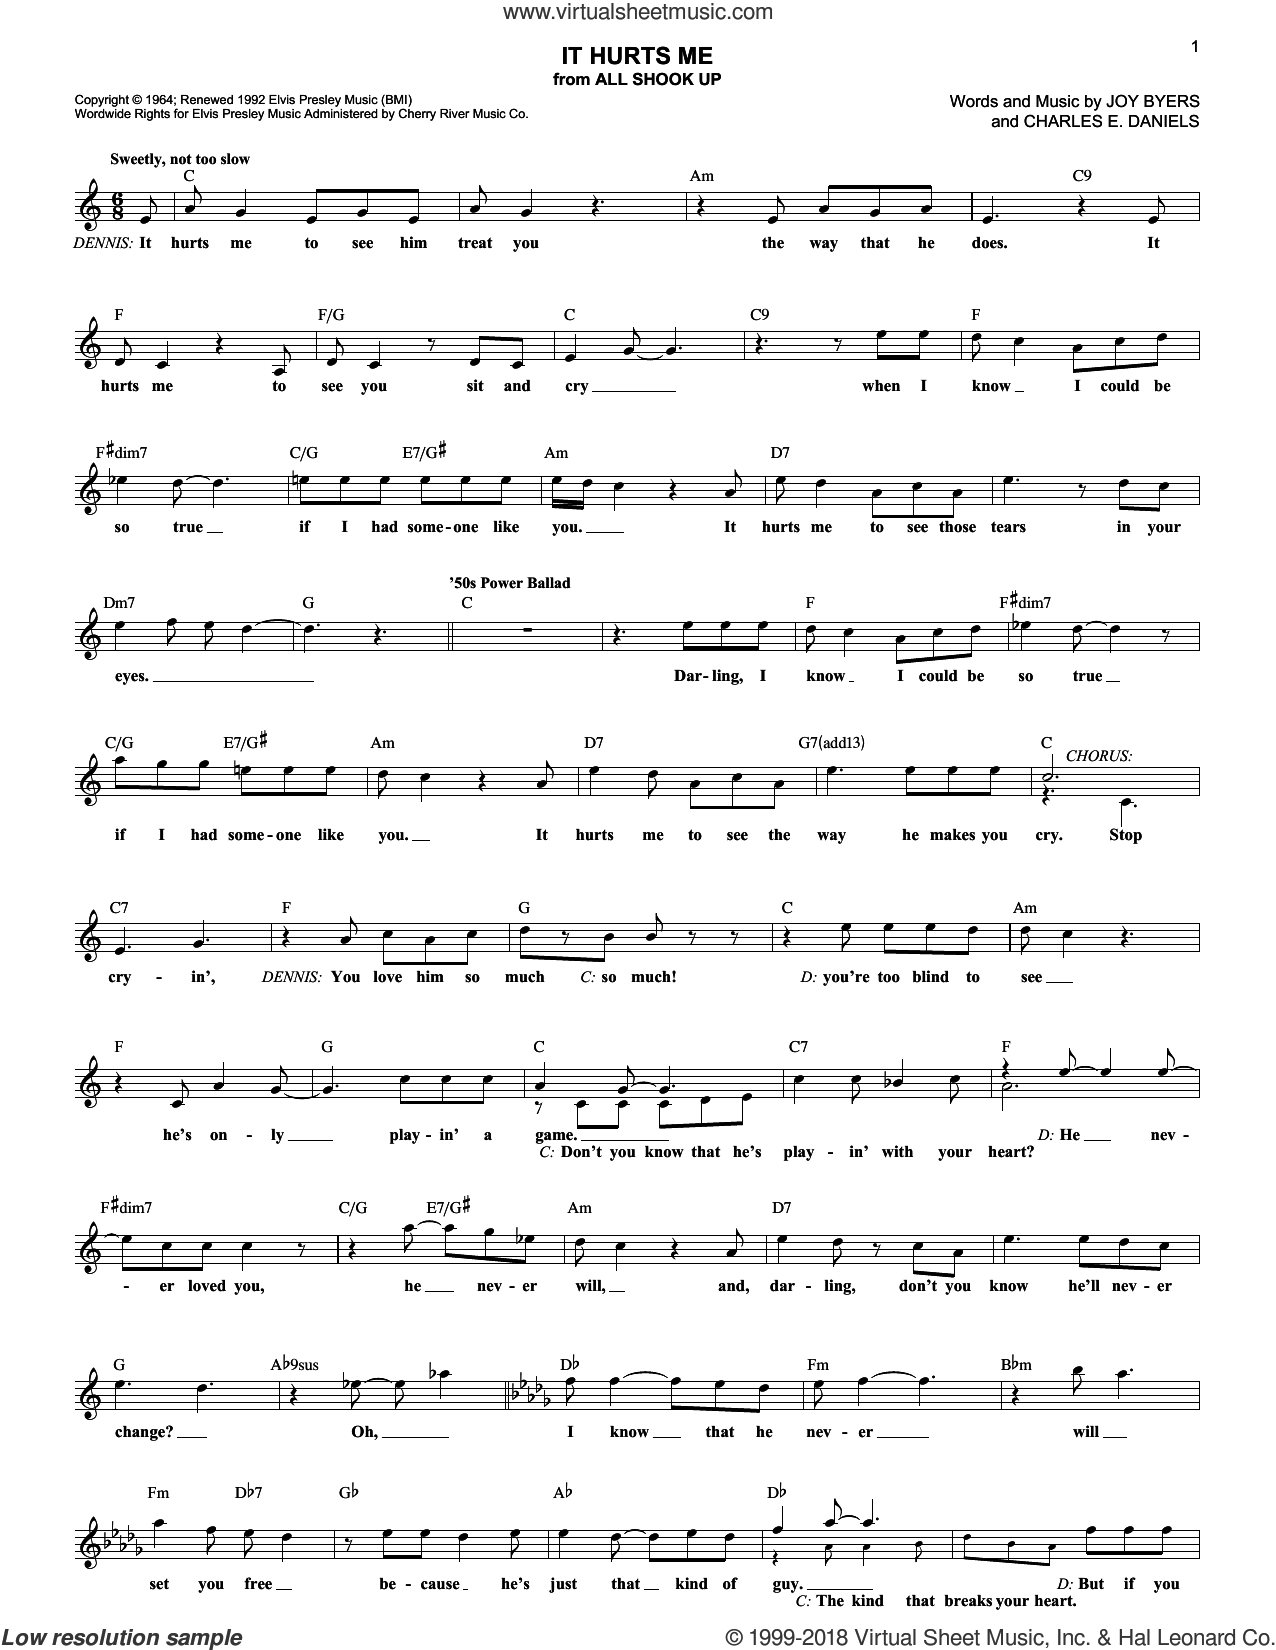 It Hurts Me sheet music for voice and other instruments (fake book) by Elvis Presley, All Shook Up (Musical), Charles E. Daniels and Joy Byers, intermediate skill level